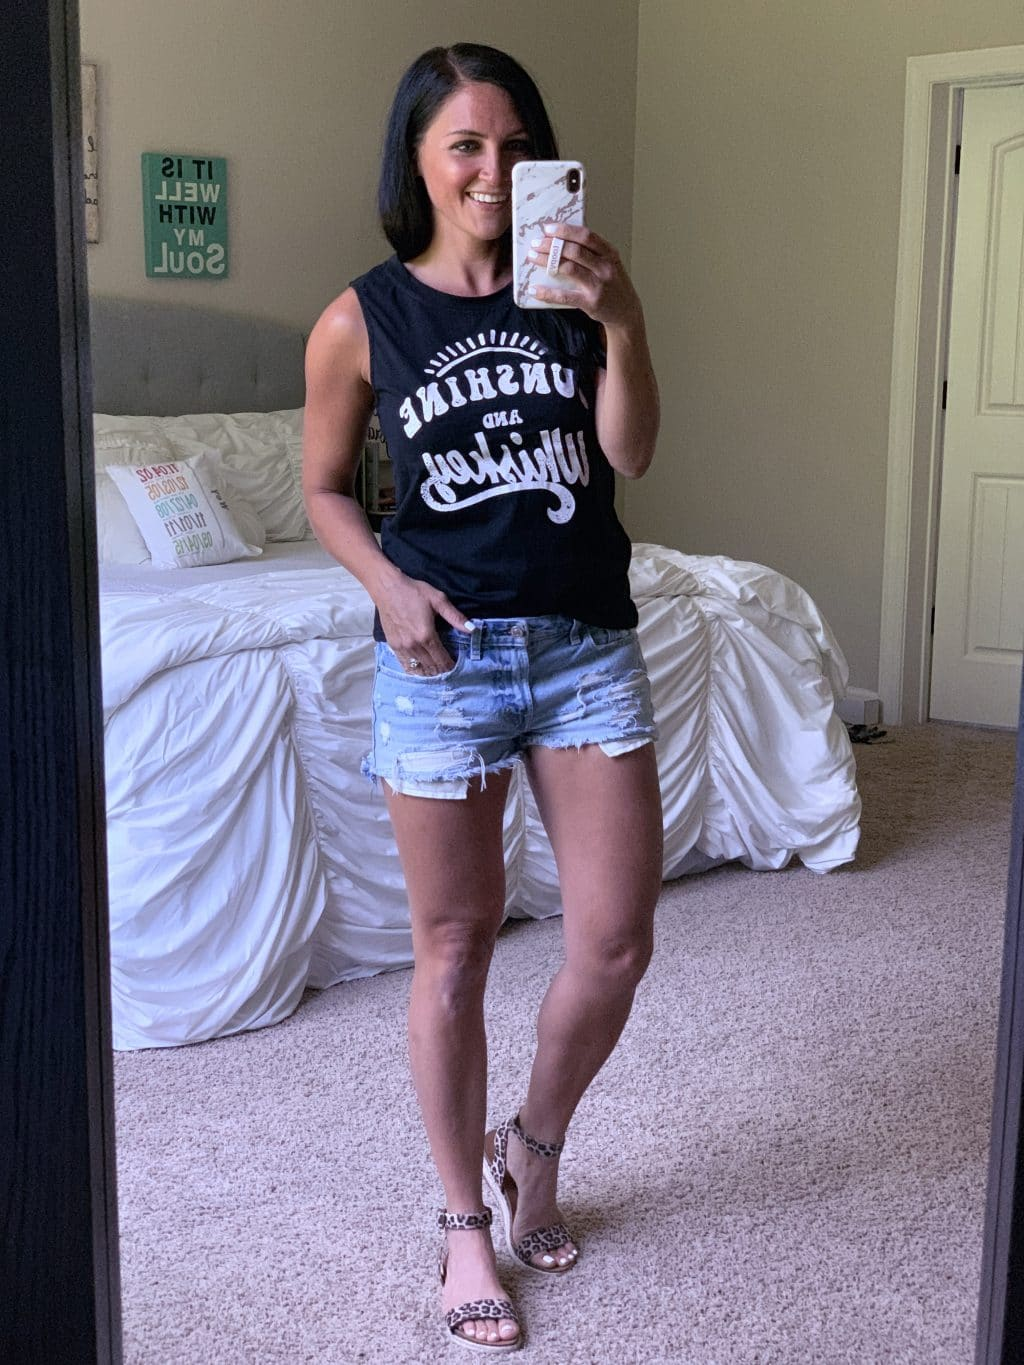 Amazon Fashion Haul, Summer Style, Stilettos and Diapers, Molly Wey, Sunshine and Whisky Tank, Country Concert Outfit